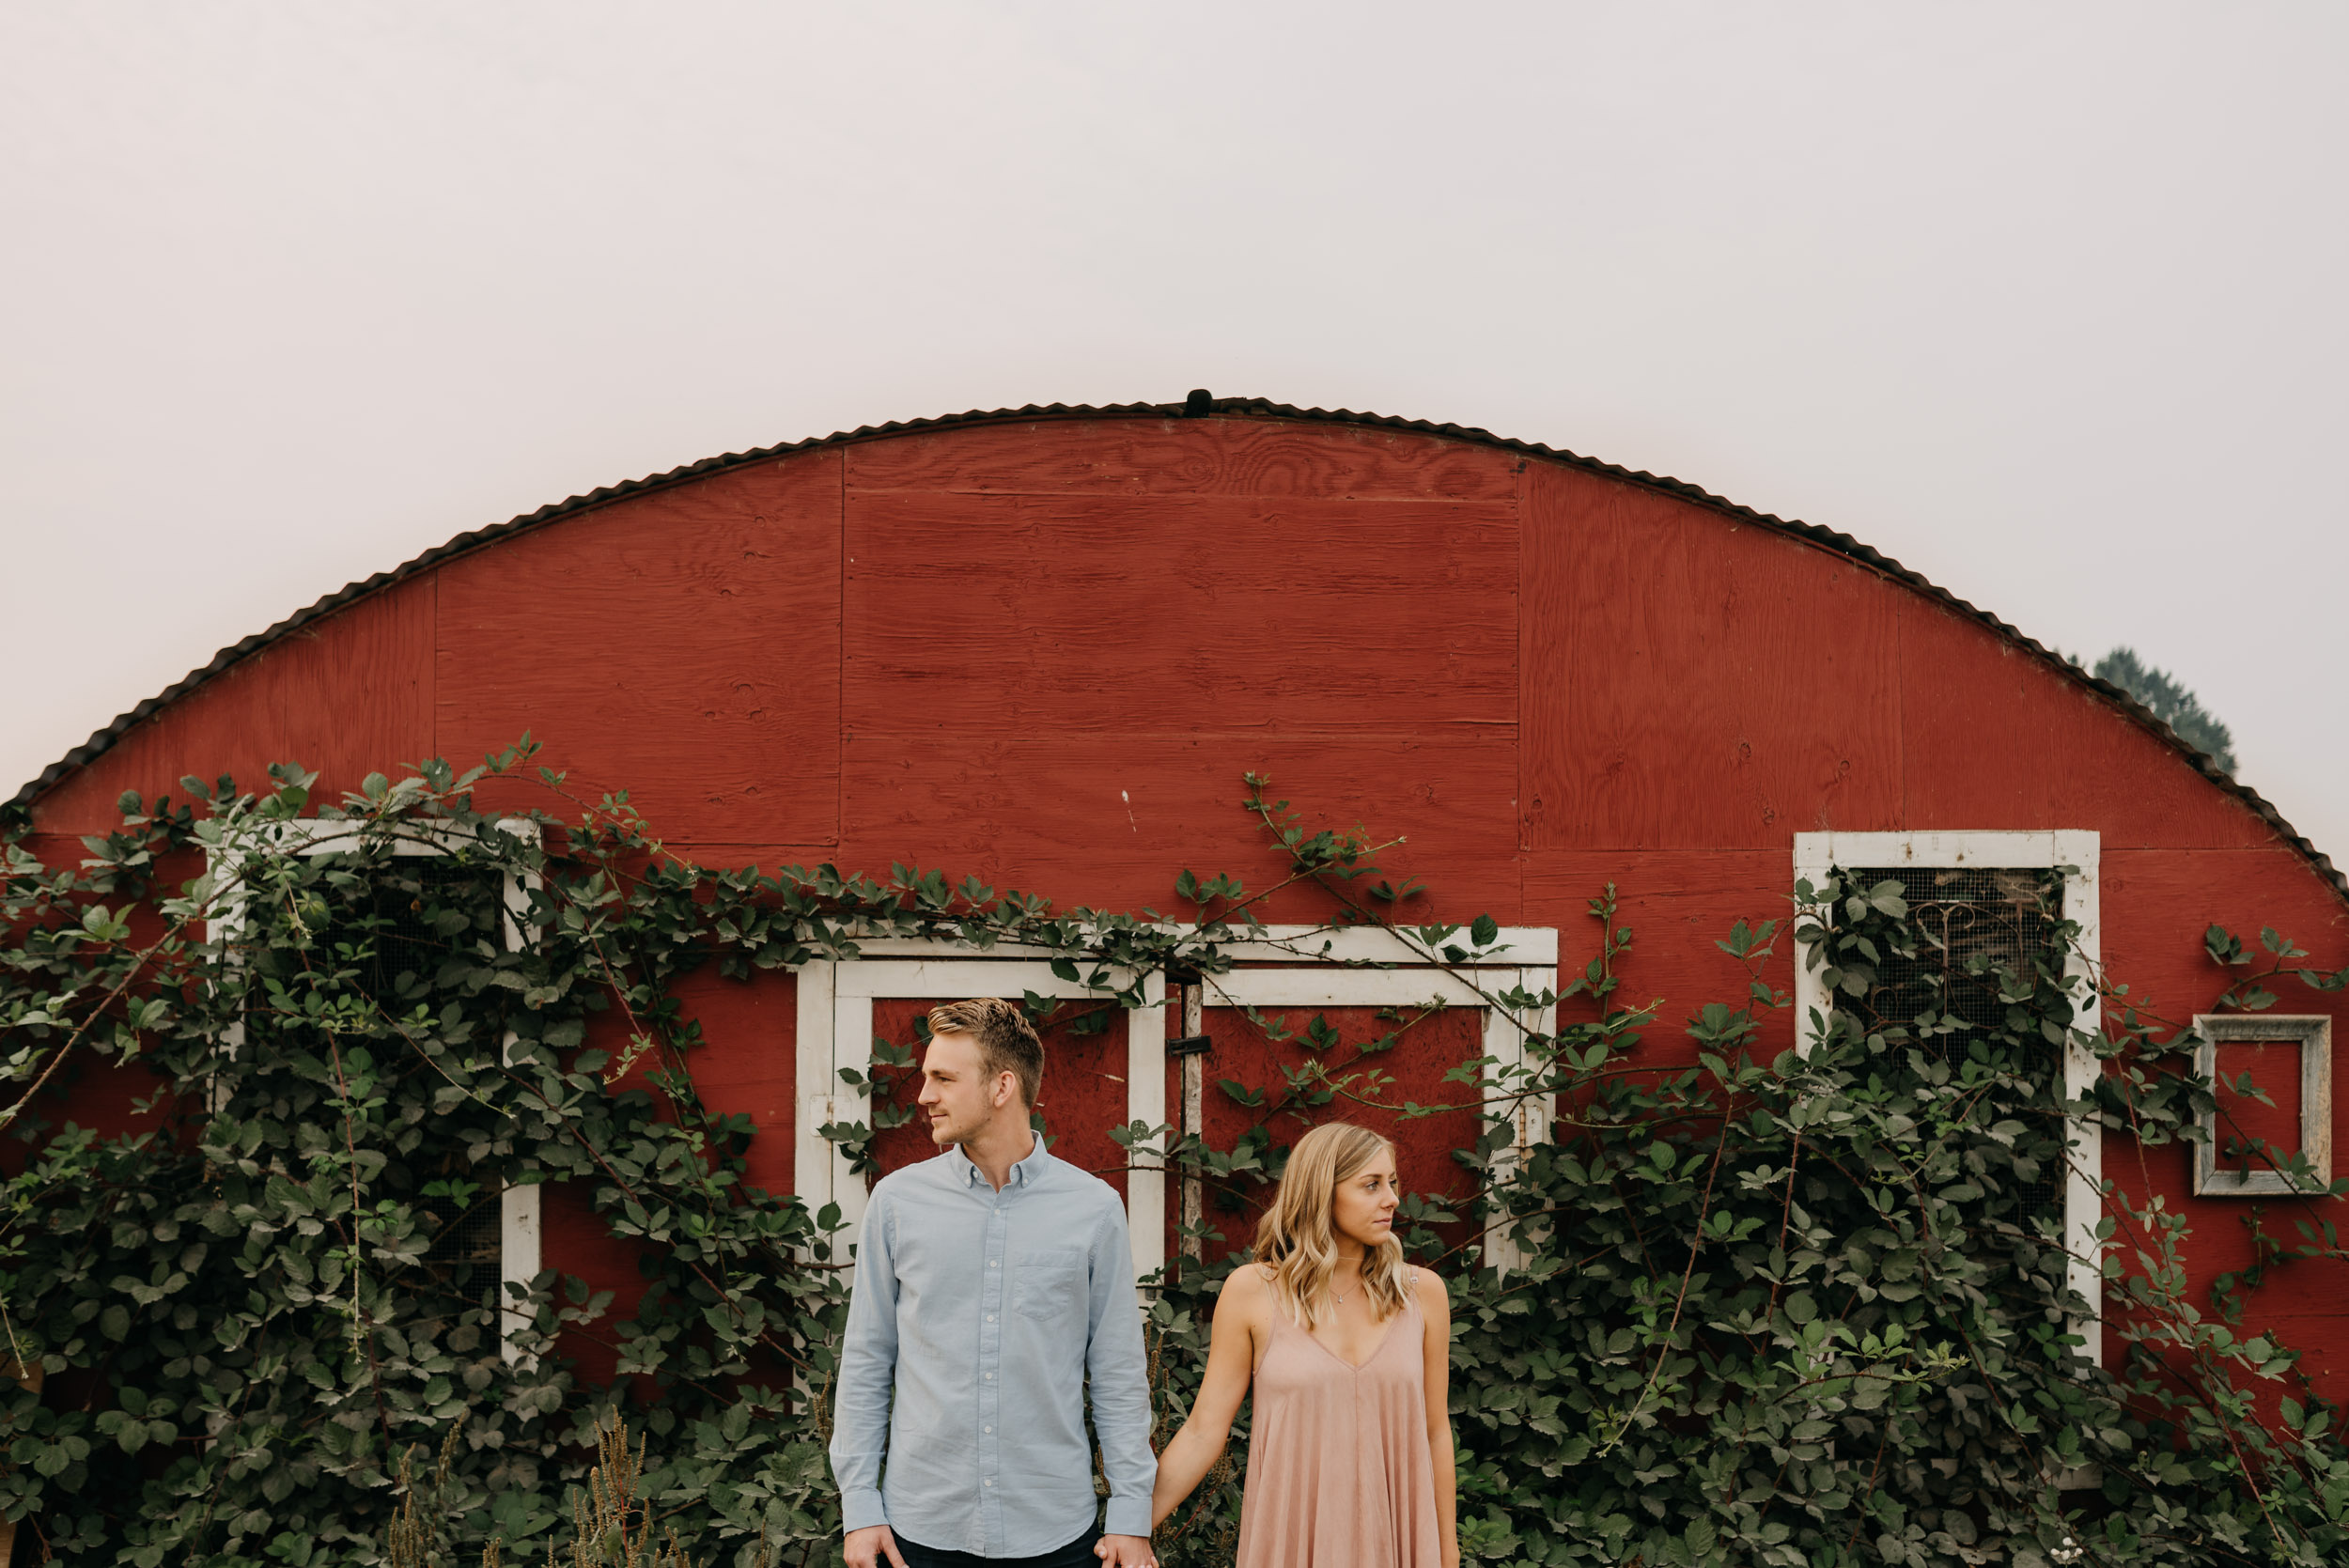 Oregon-Red-Barn-Door-Engagement-Sauvie-3376.jpg